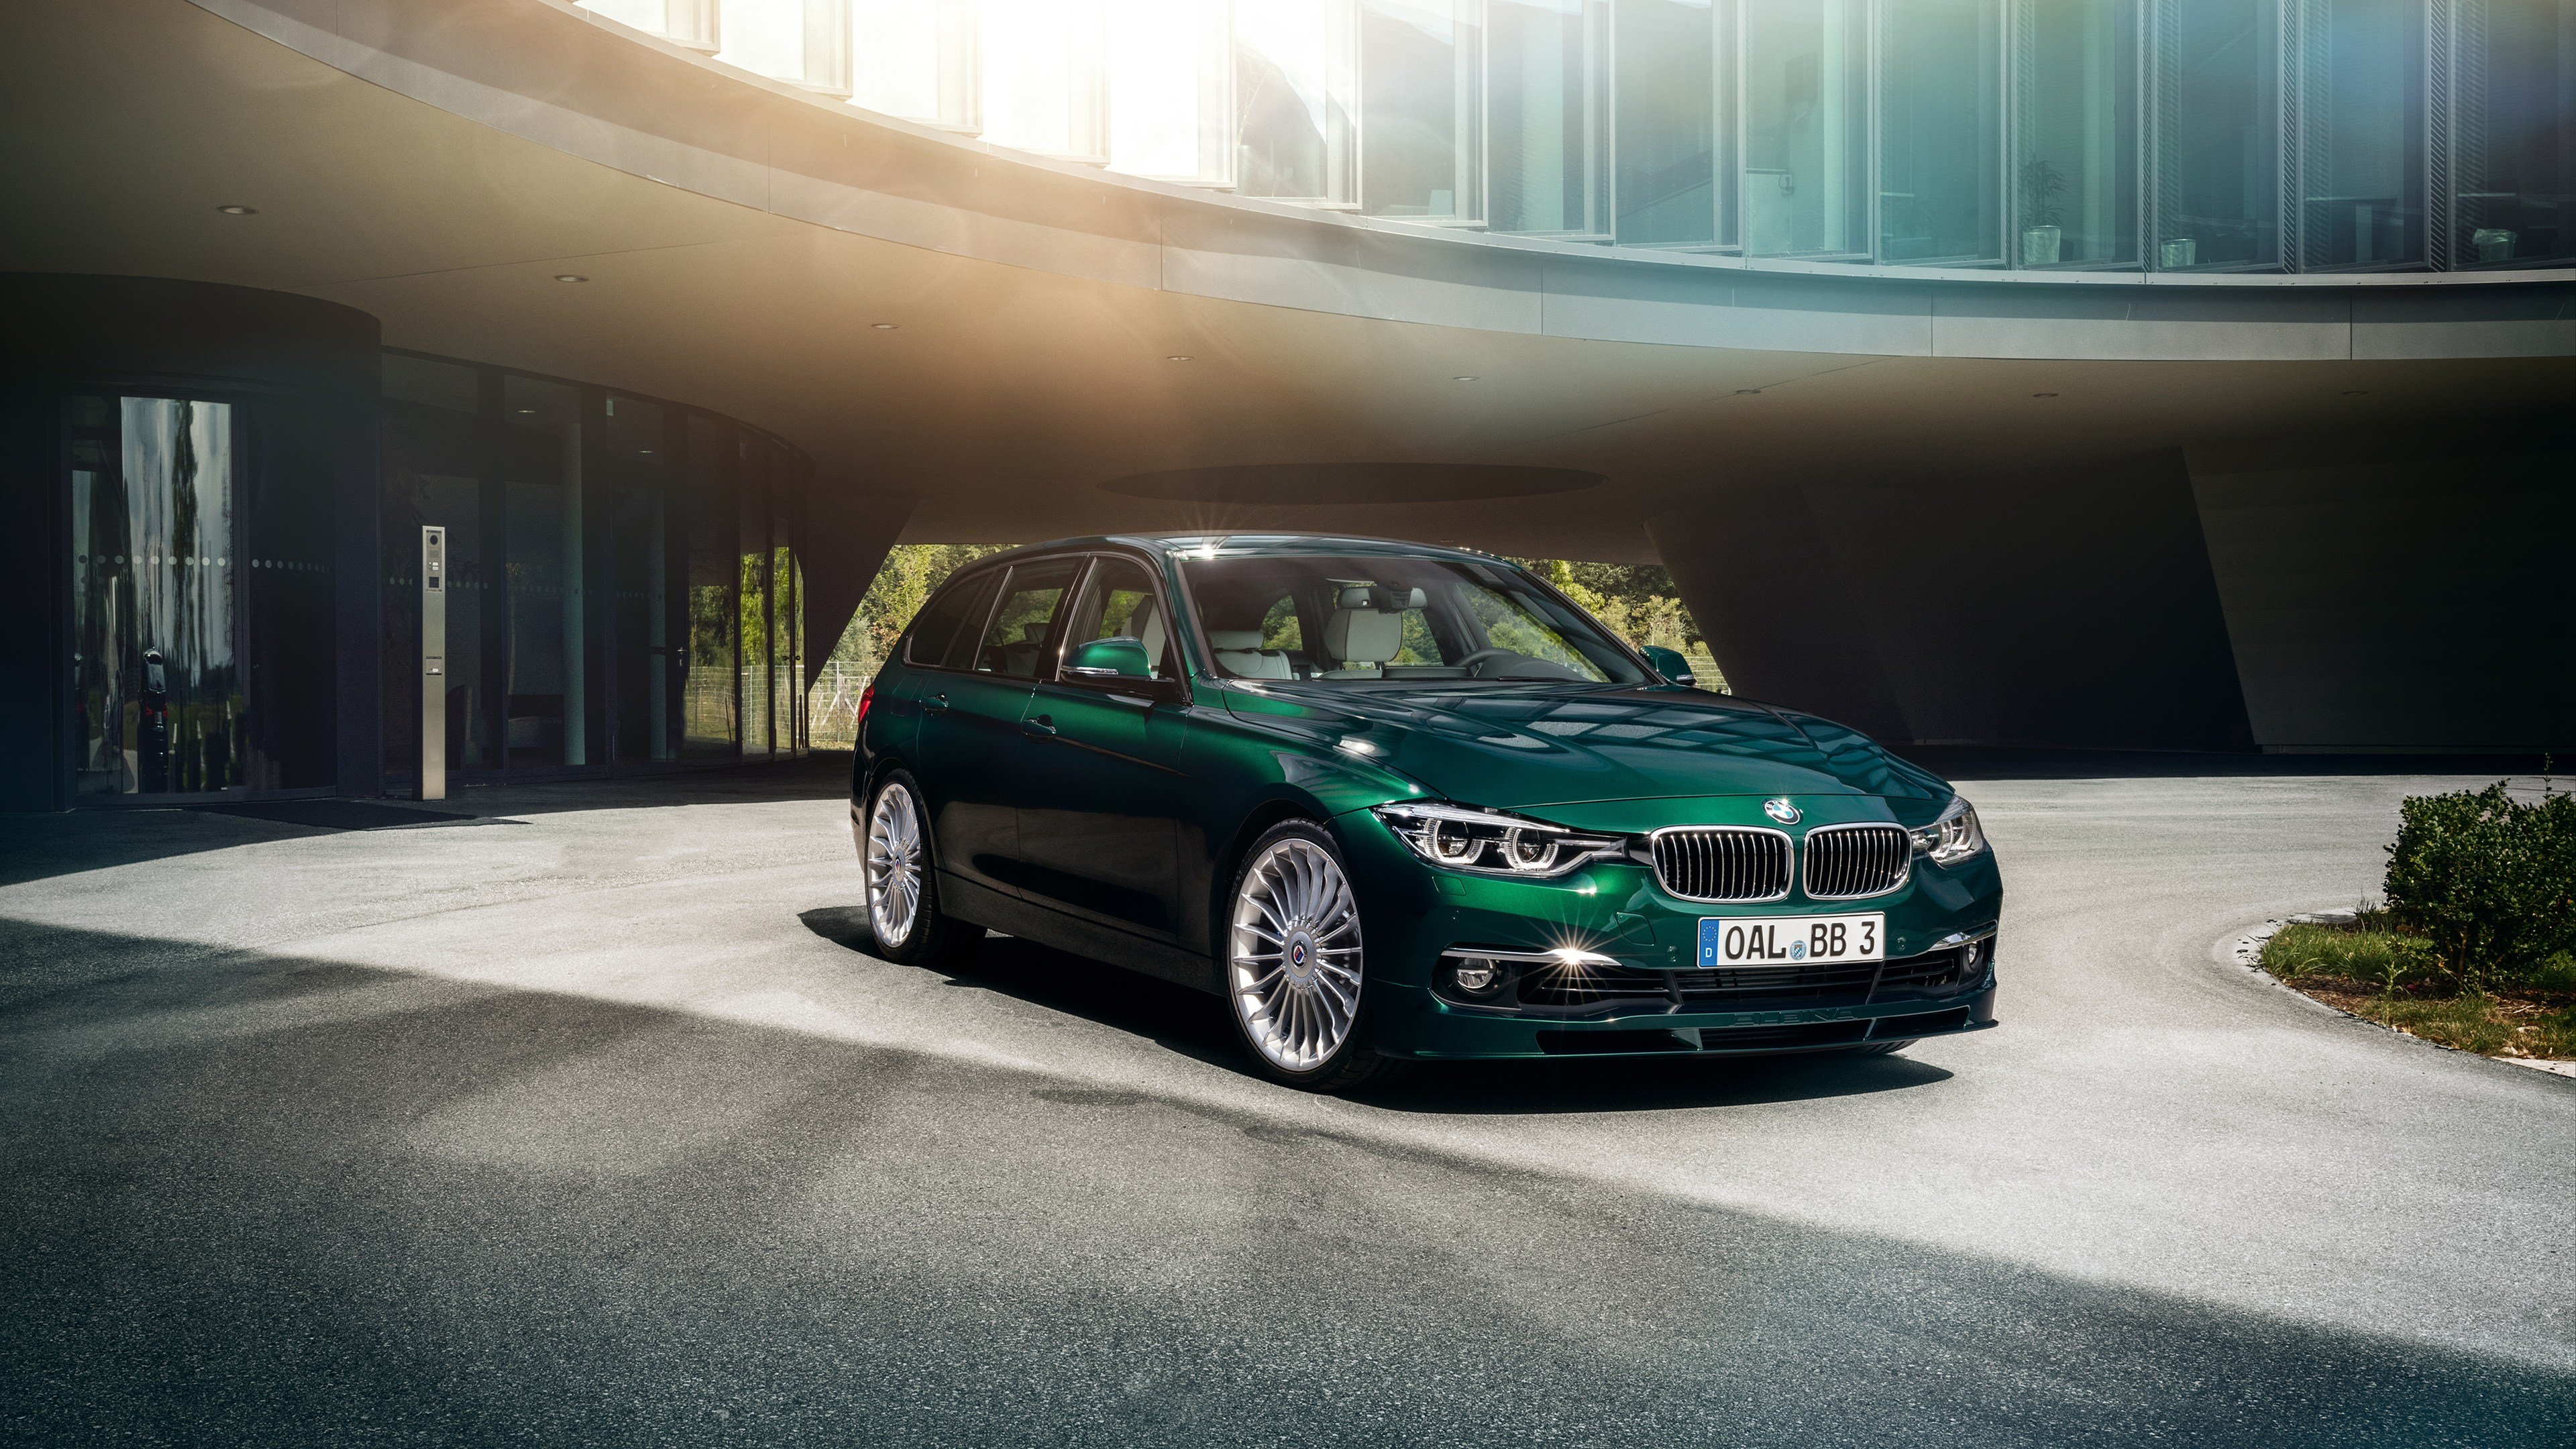 Latest Alpina B3 Bmw 3 Series 2015 Wallpaper Hd Car Wallpapers Free Download